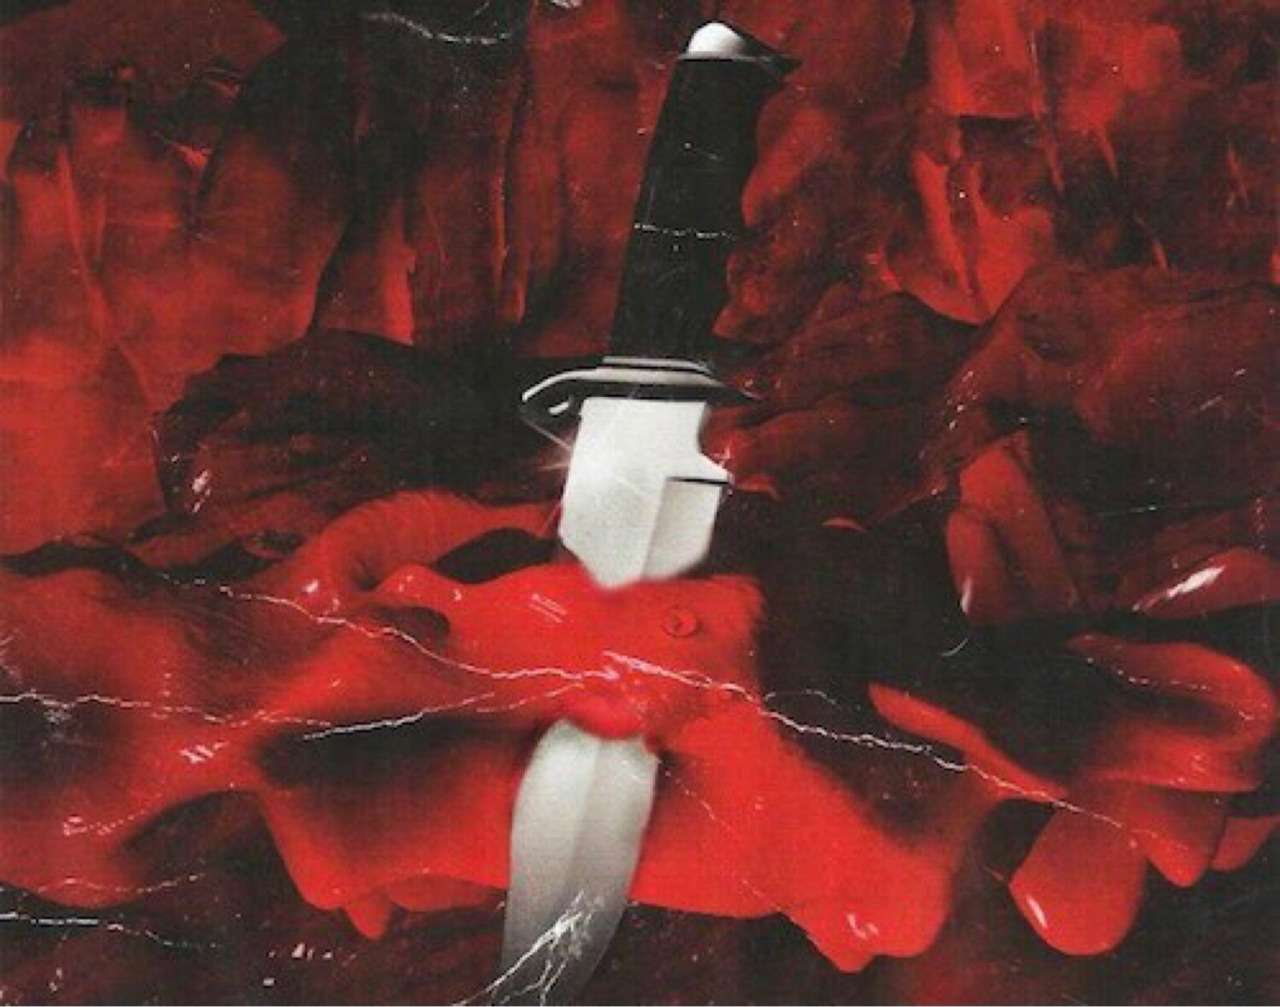 knife, red, and scarlet image